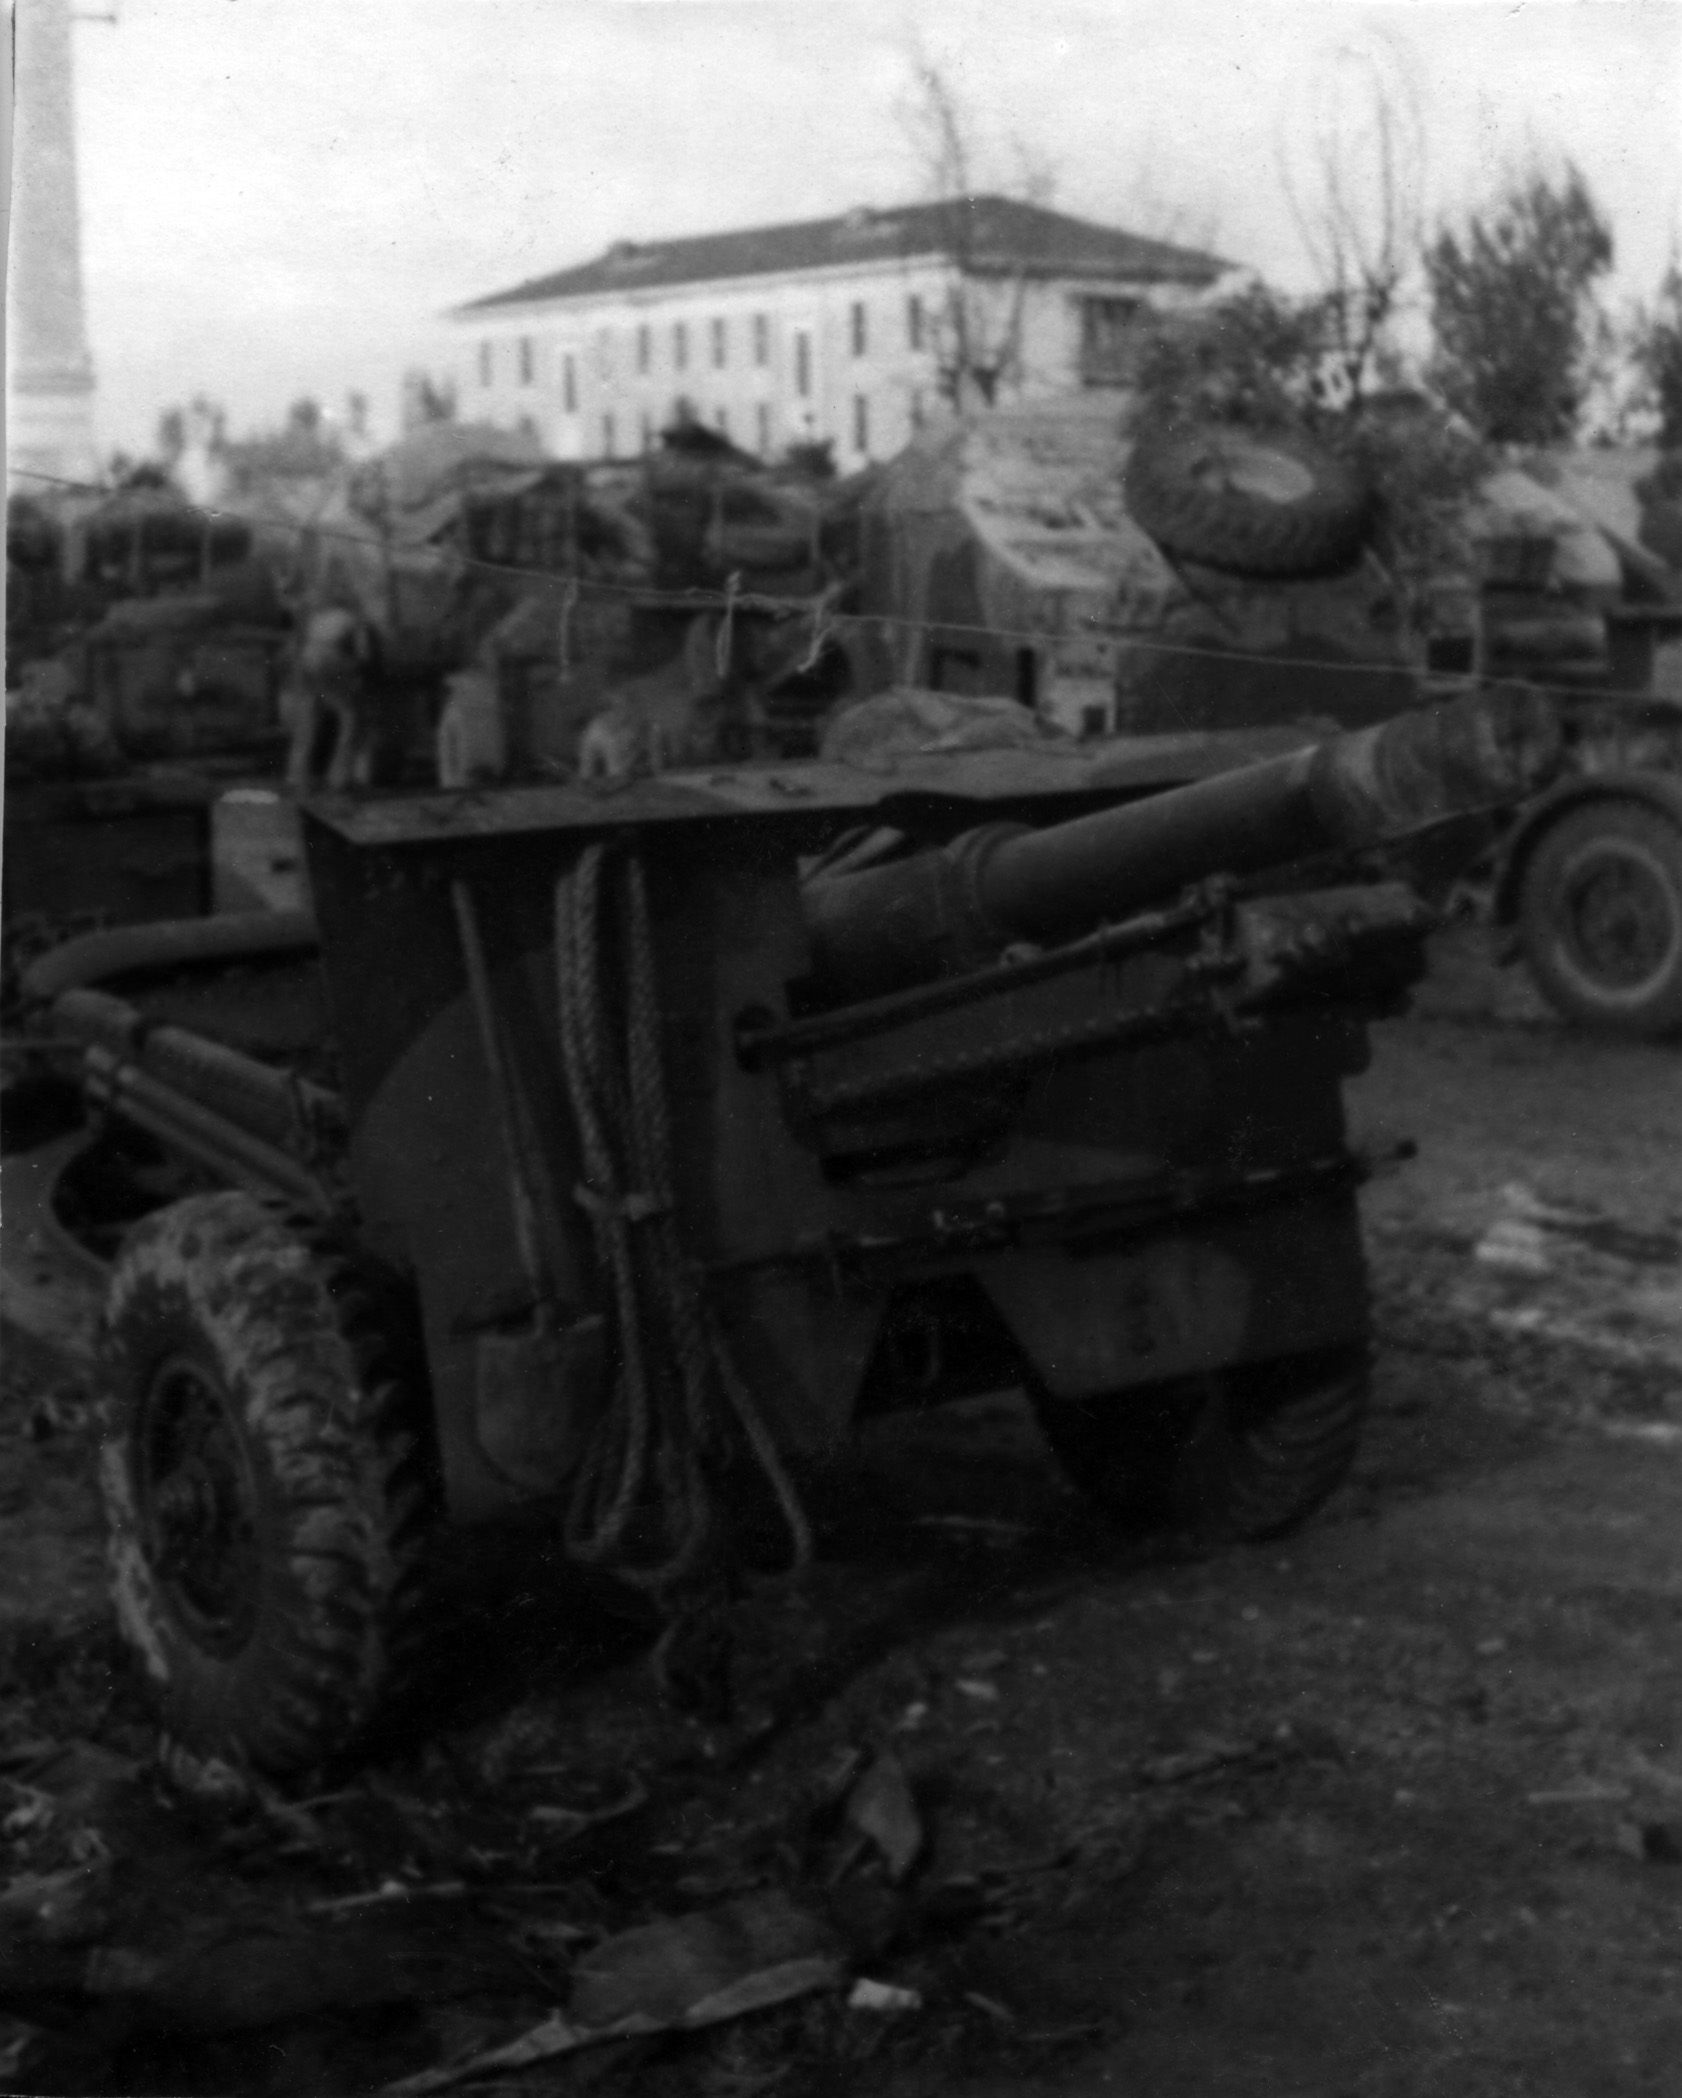 25 pdr on tow, probably in Italy